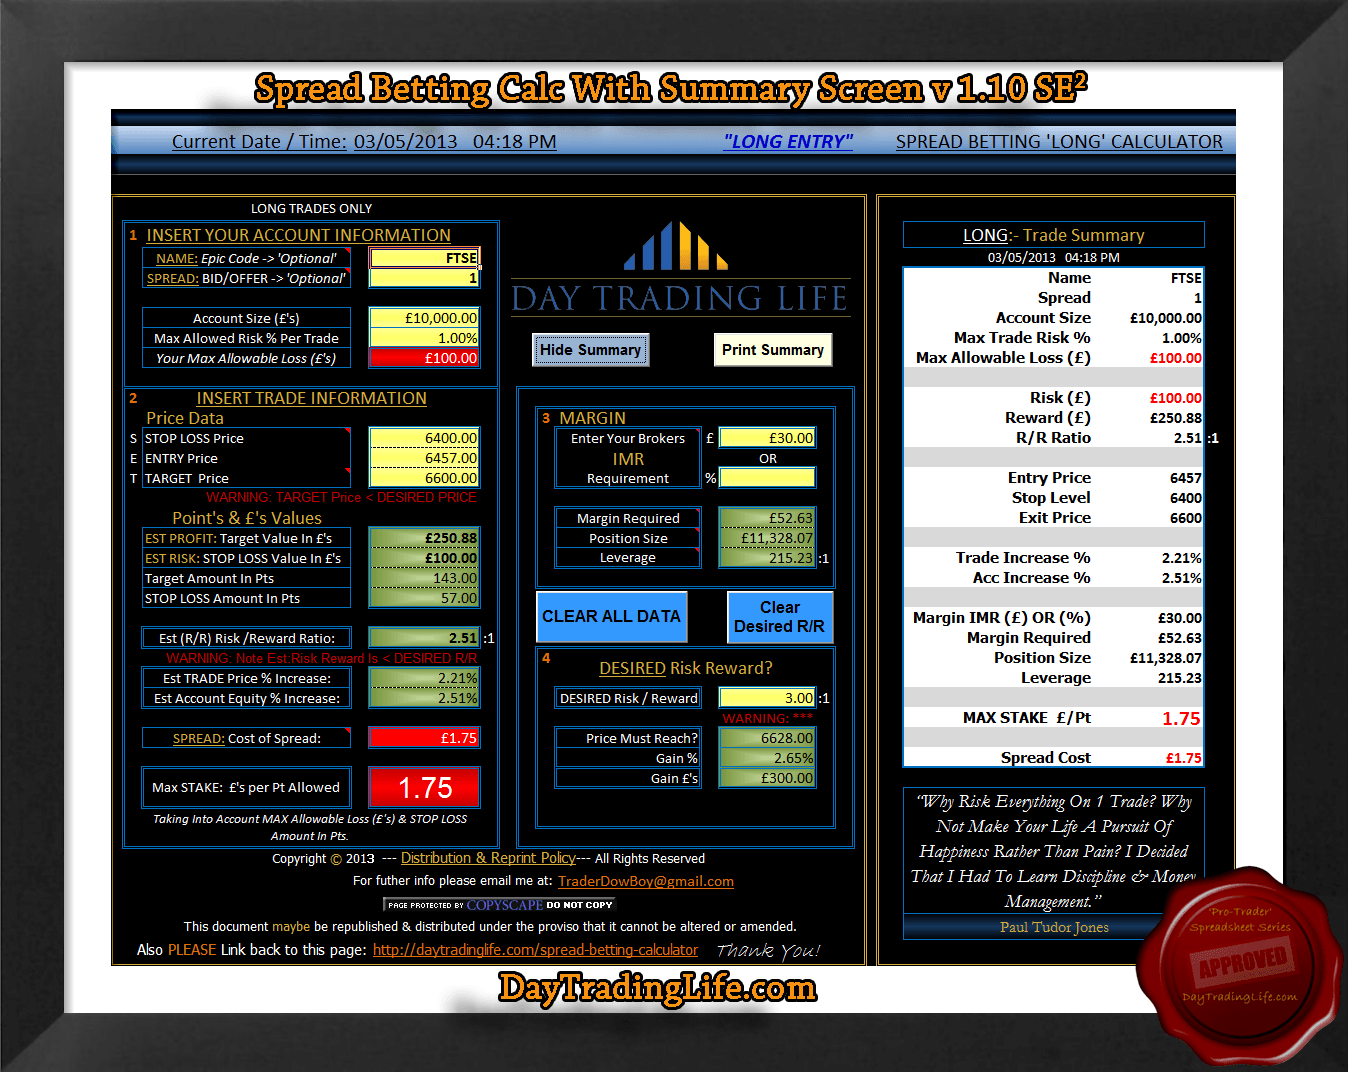 http://www.daytradinglife.com/wp-content/uploads/2013/05/Spread-Betting-Calculator-Summary-Screen.png